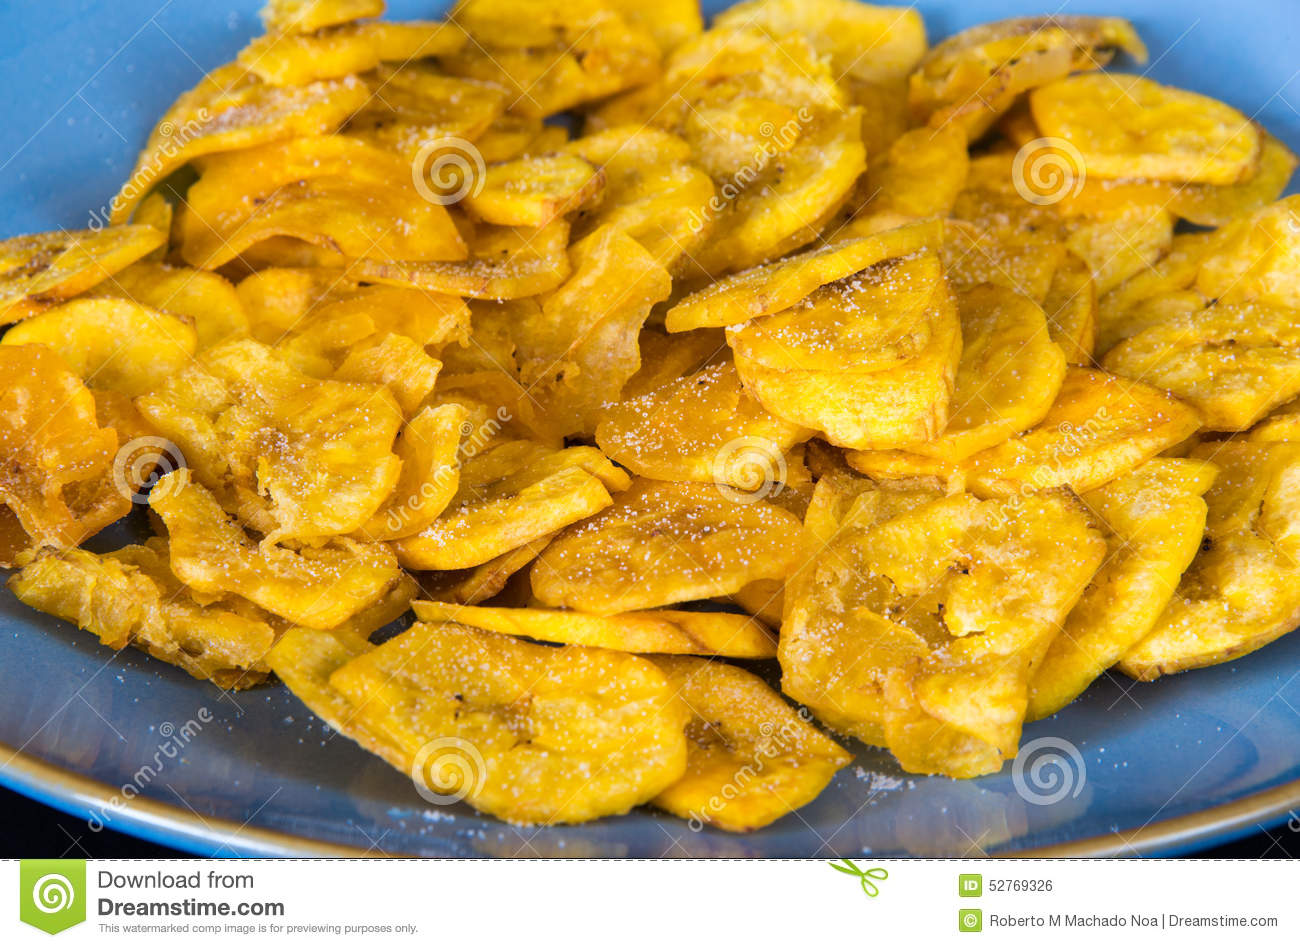 Cuisiner Le Plantain Cuban Cuisine Plantain Salty Chips Stock Photo Image Of Crispy